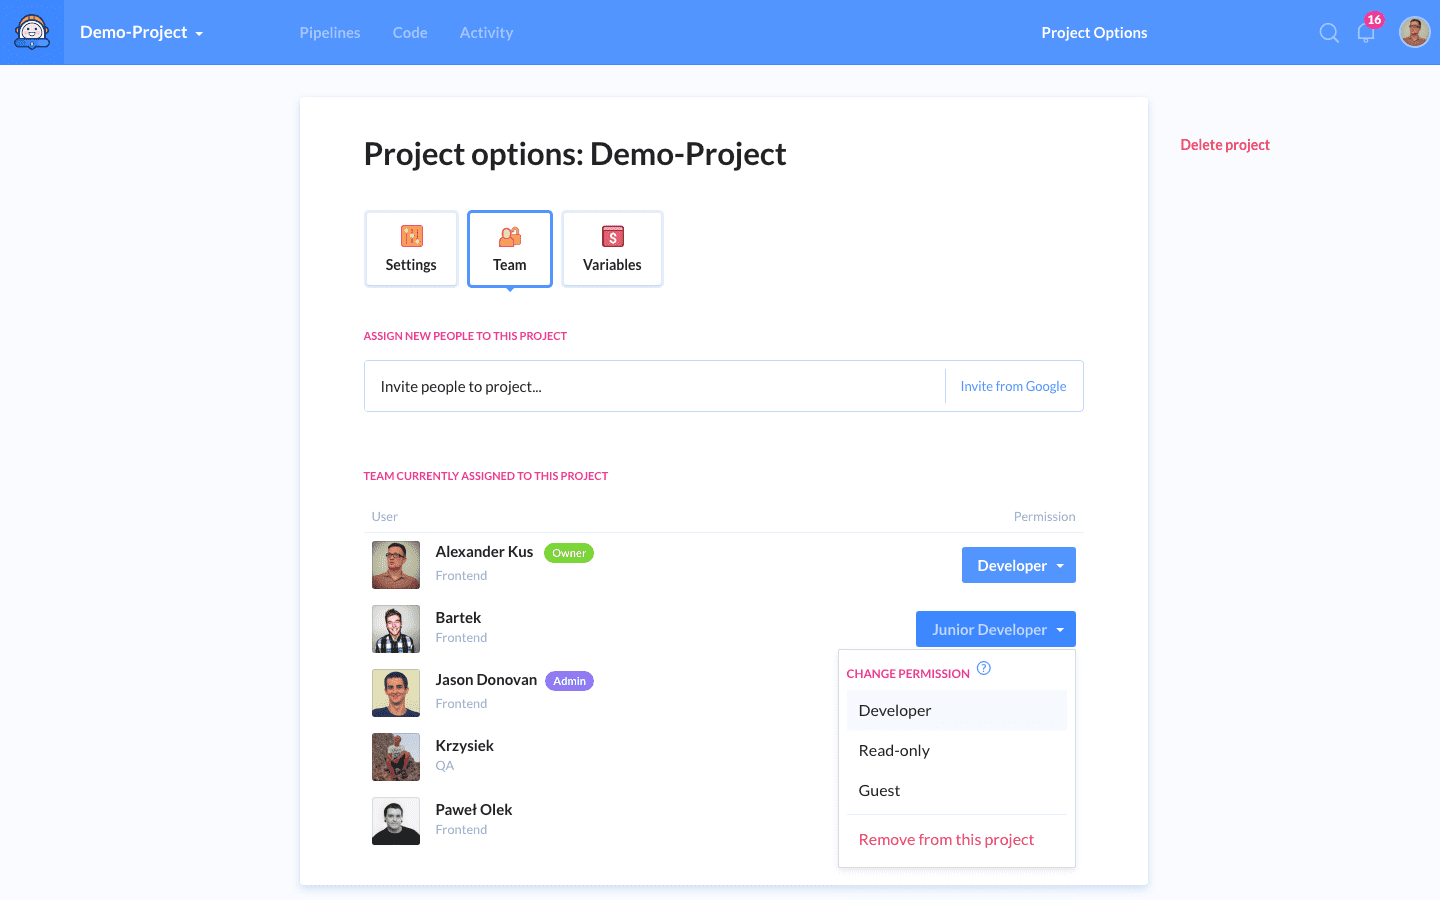 Defining permissions in project